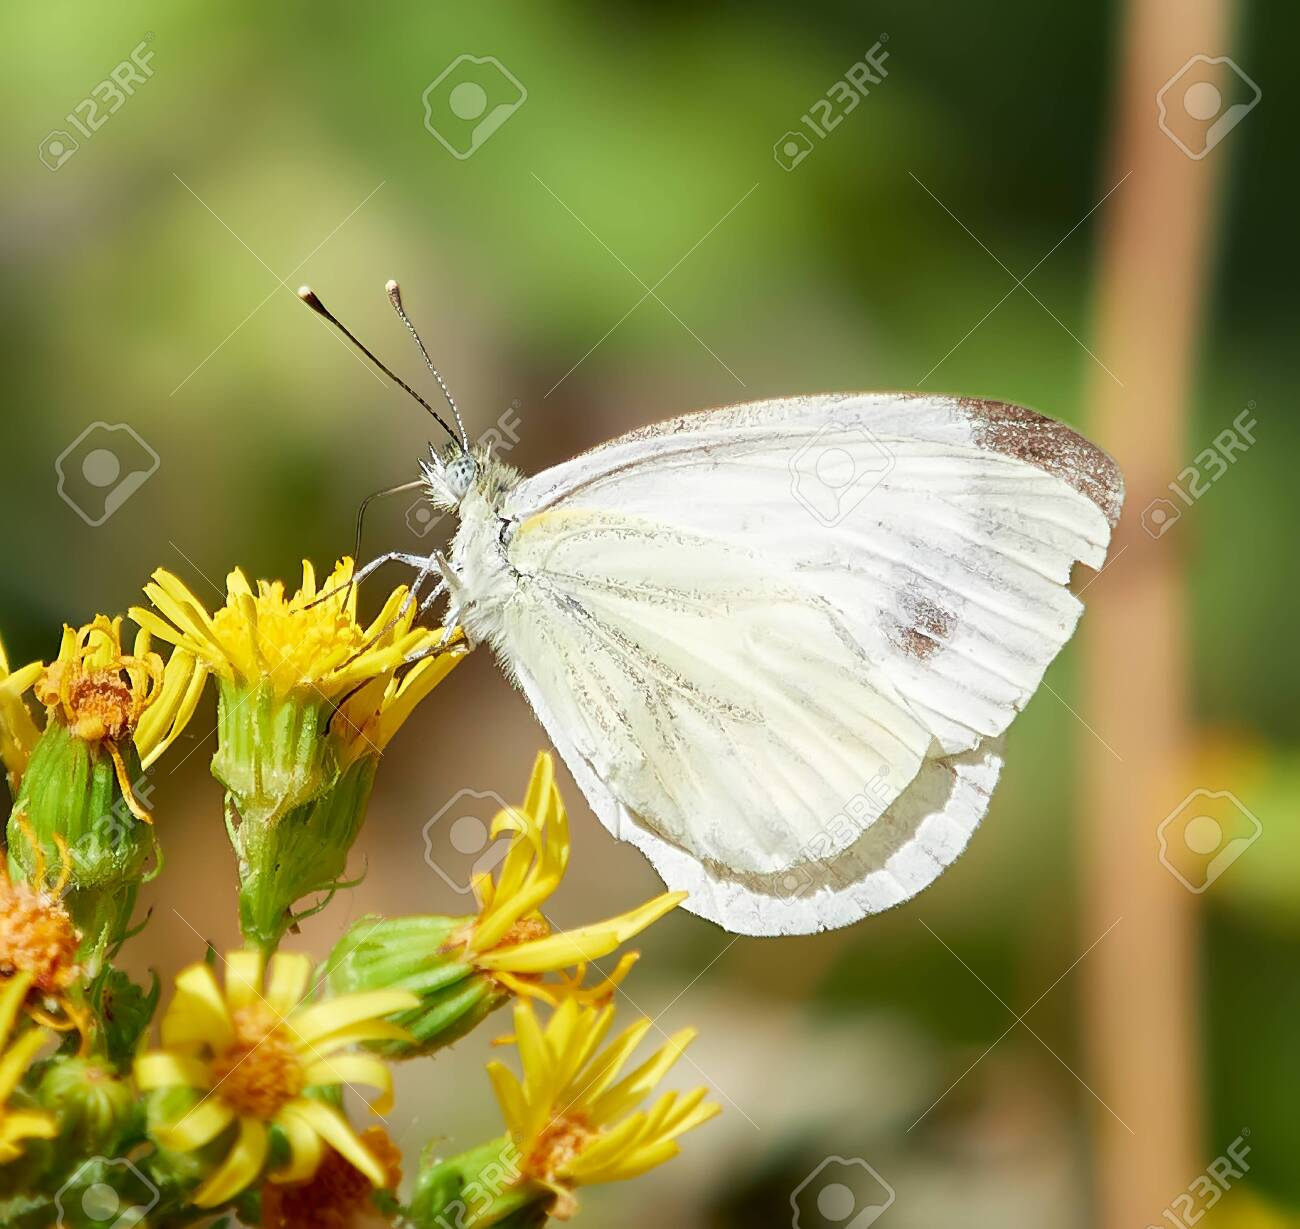 white butterfly, with brown spots on the wings, perched on yellow flowers, with a green blur background - 153389426